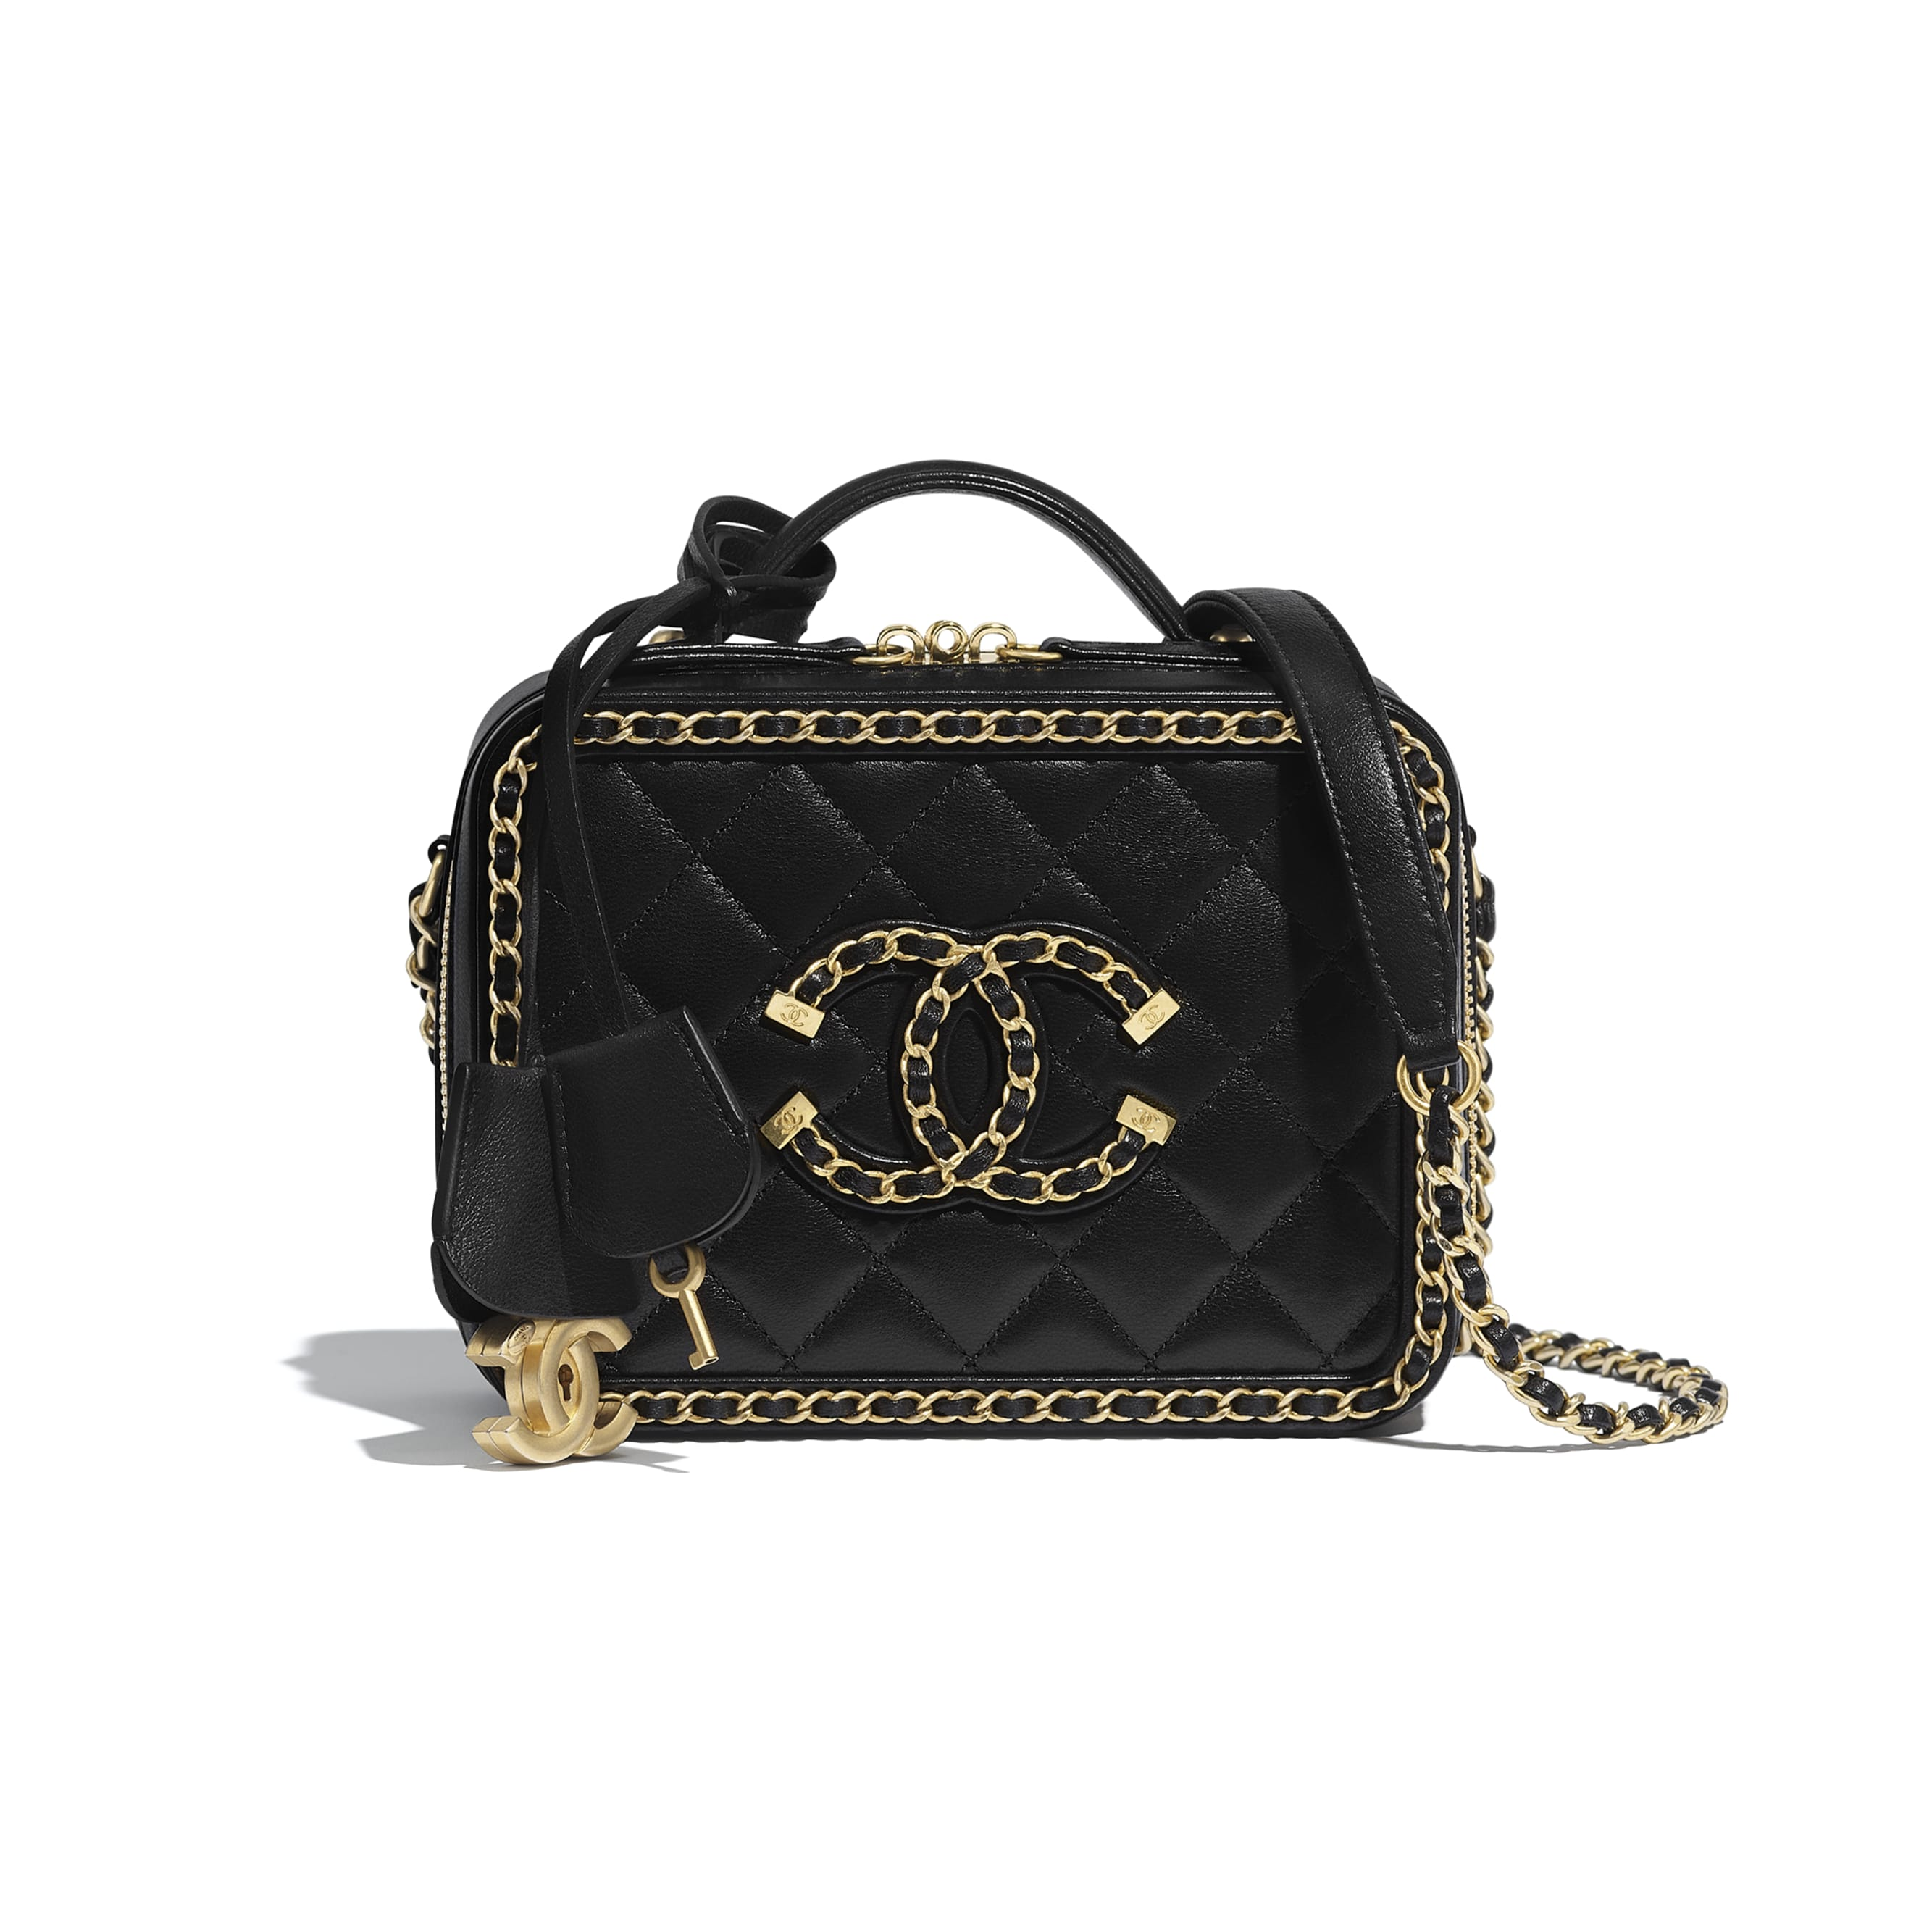 Small Vanity Case - Black - Goatskin & Gold-Tone Metal - CHANEL - Default view - see standard sized version